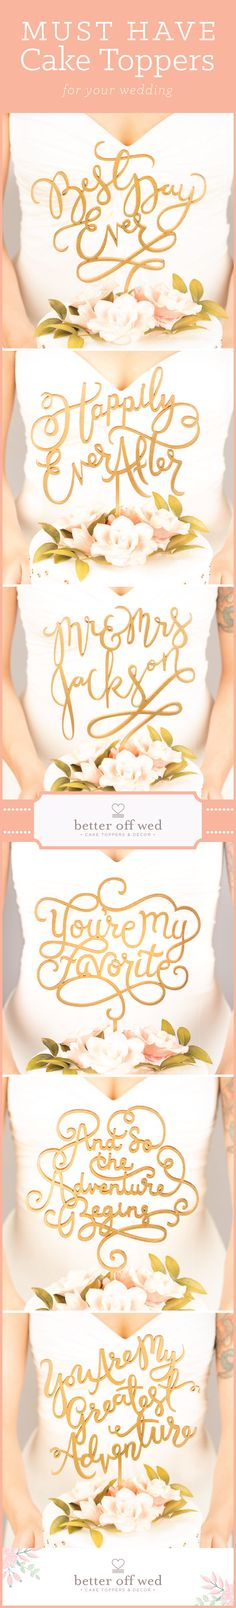 Seriously the sweetest cake toppers I've ever come across! And more than 100 designs to choose from! www.betteroffwed.co